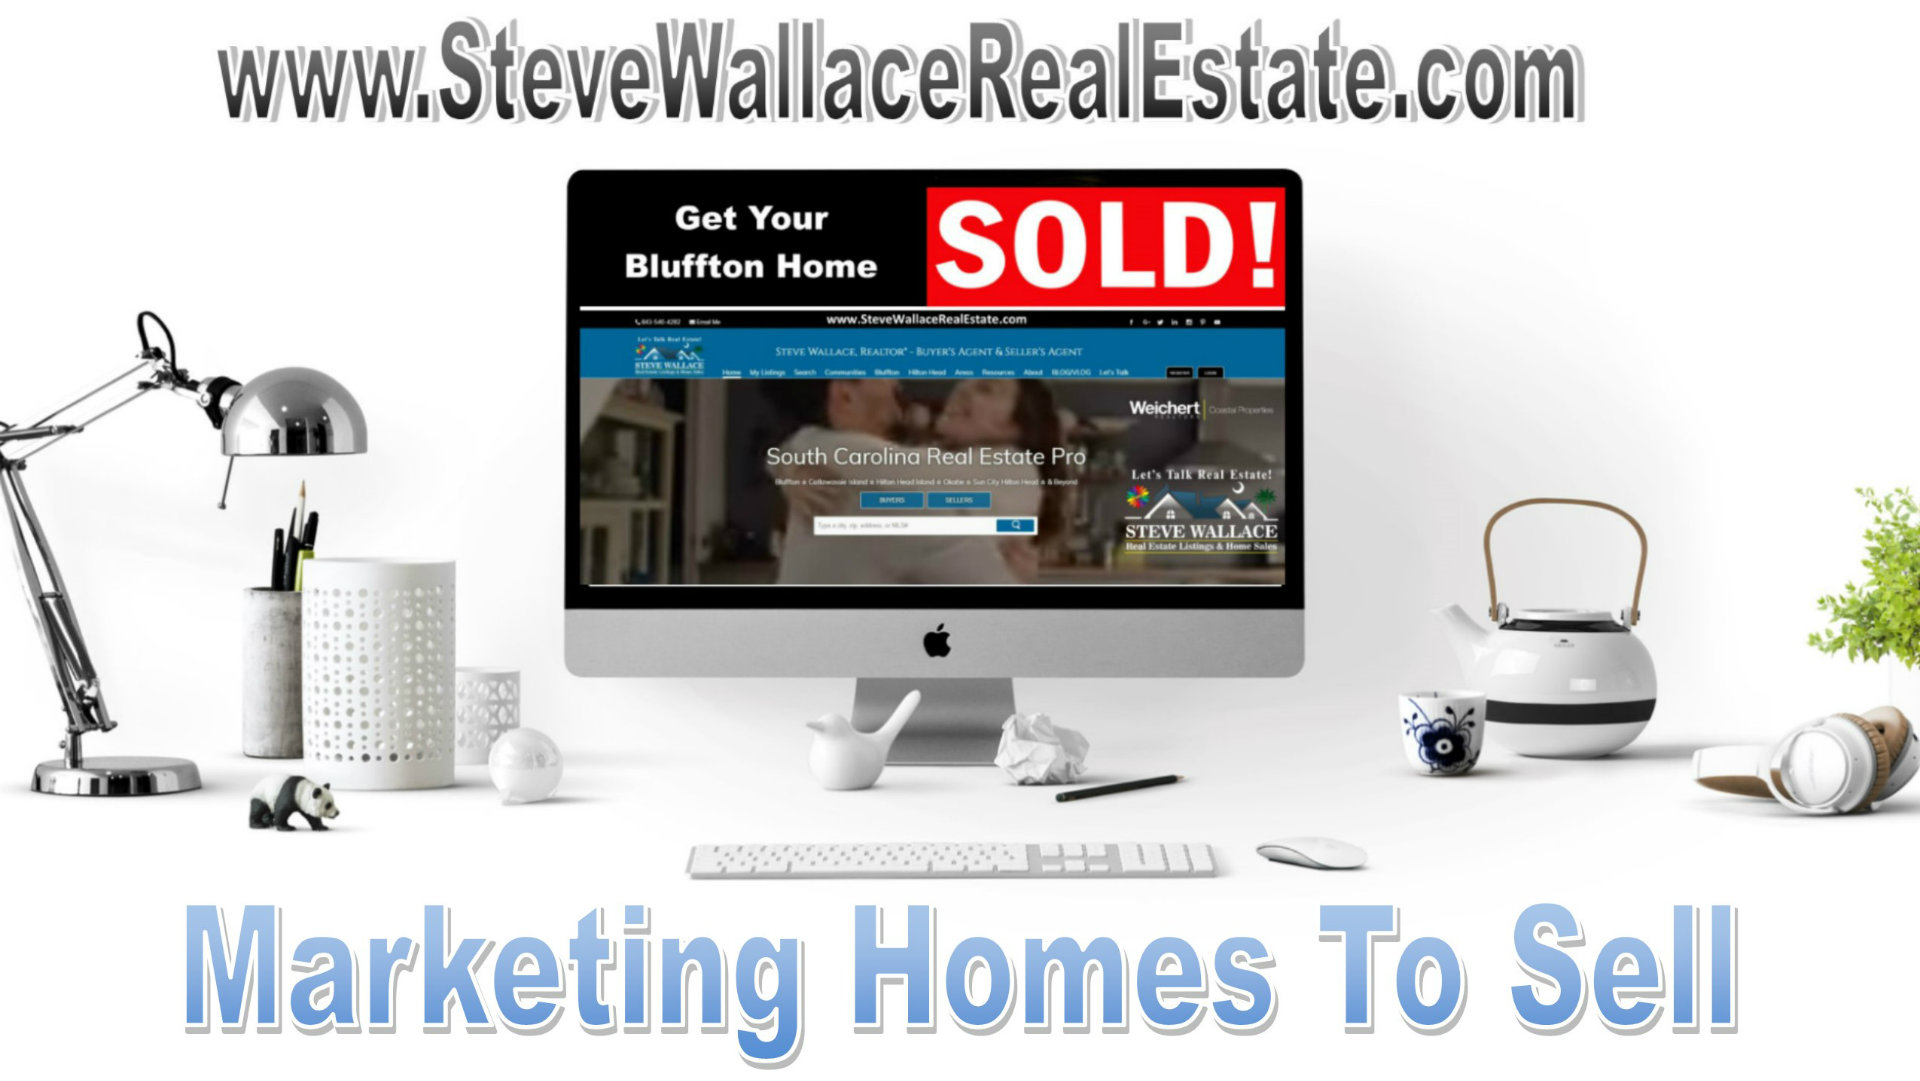 Market Your Home, Sell, Selling, Bluffton SC Real Estate, Home Sales